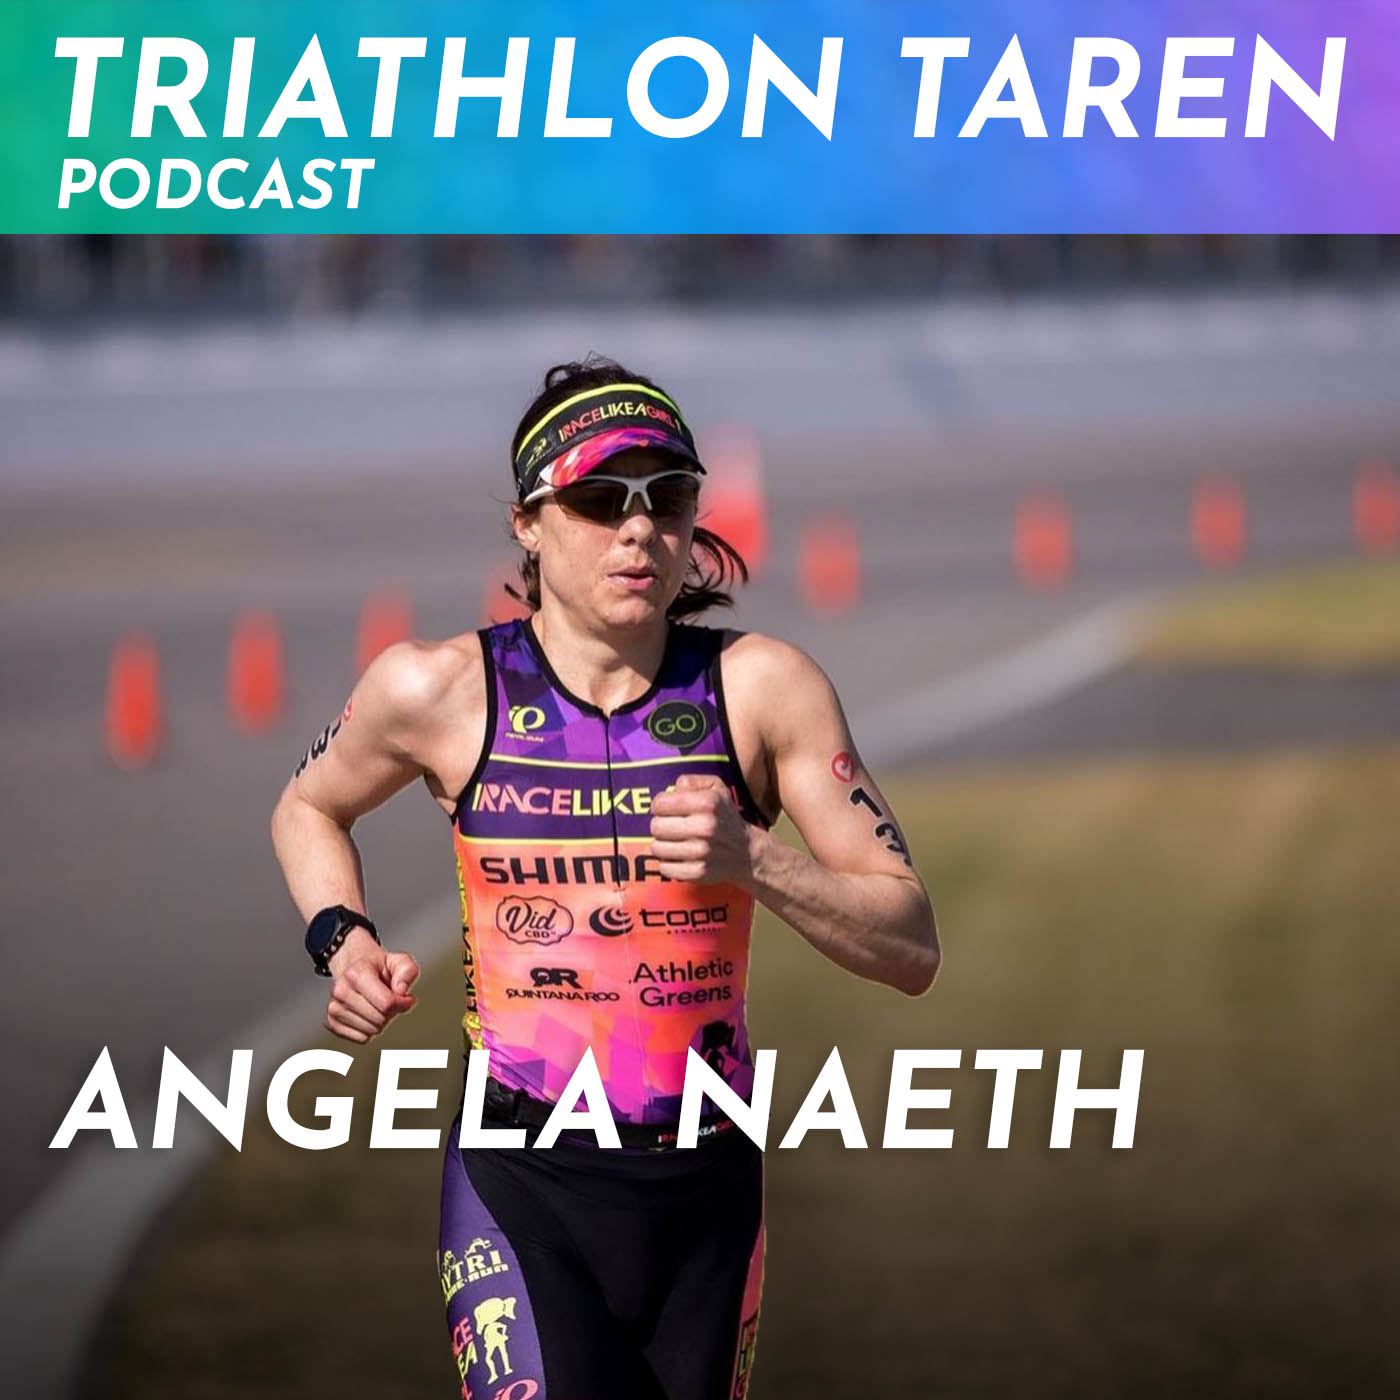 Pro Triathlete with Lyme Disease | Angela Naeth